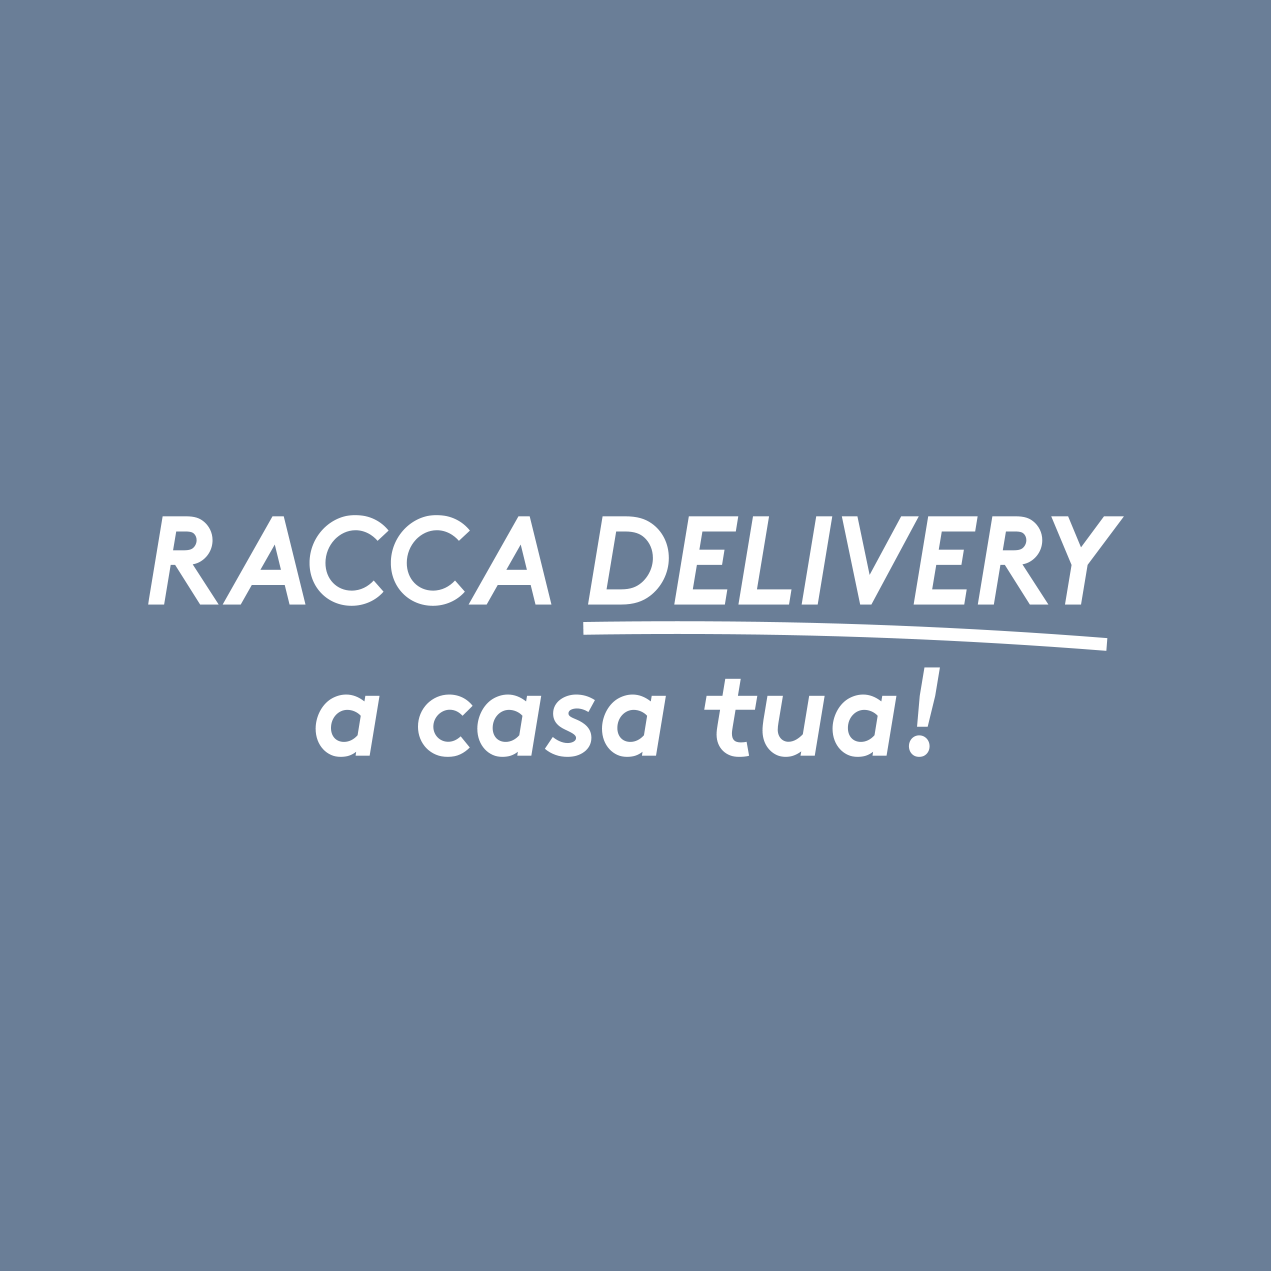 racca-delivery